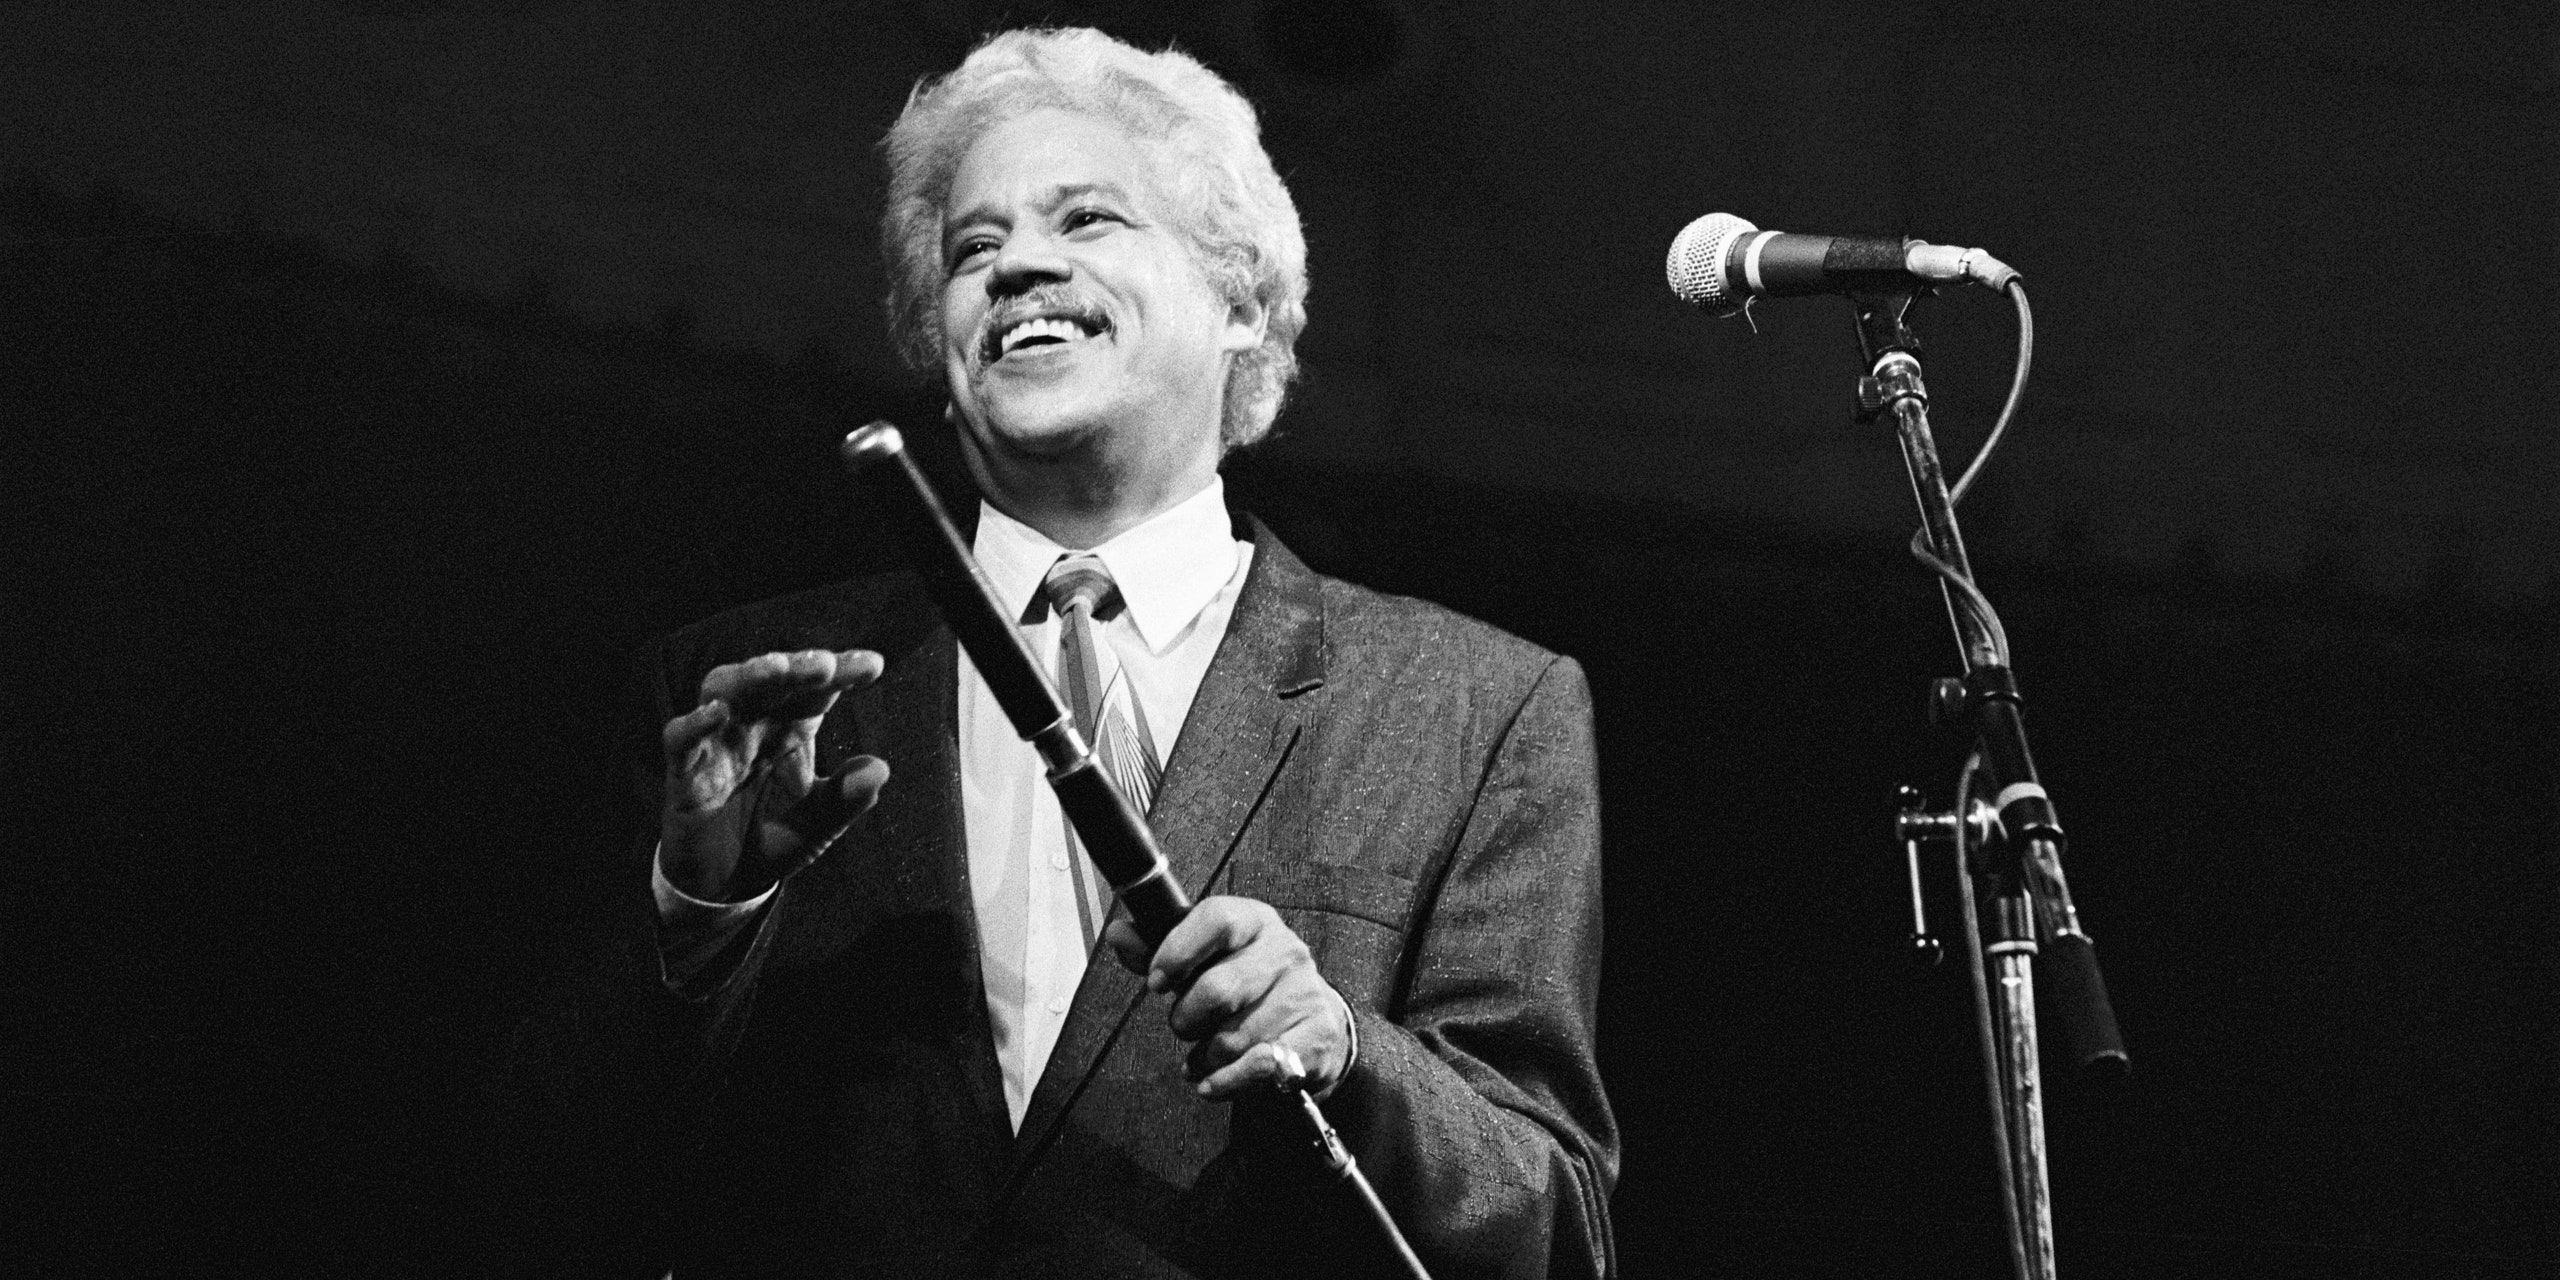 Johnny Pacheco, Salsa Legend and Fania Records Co-Founder, Dead at 85